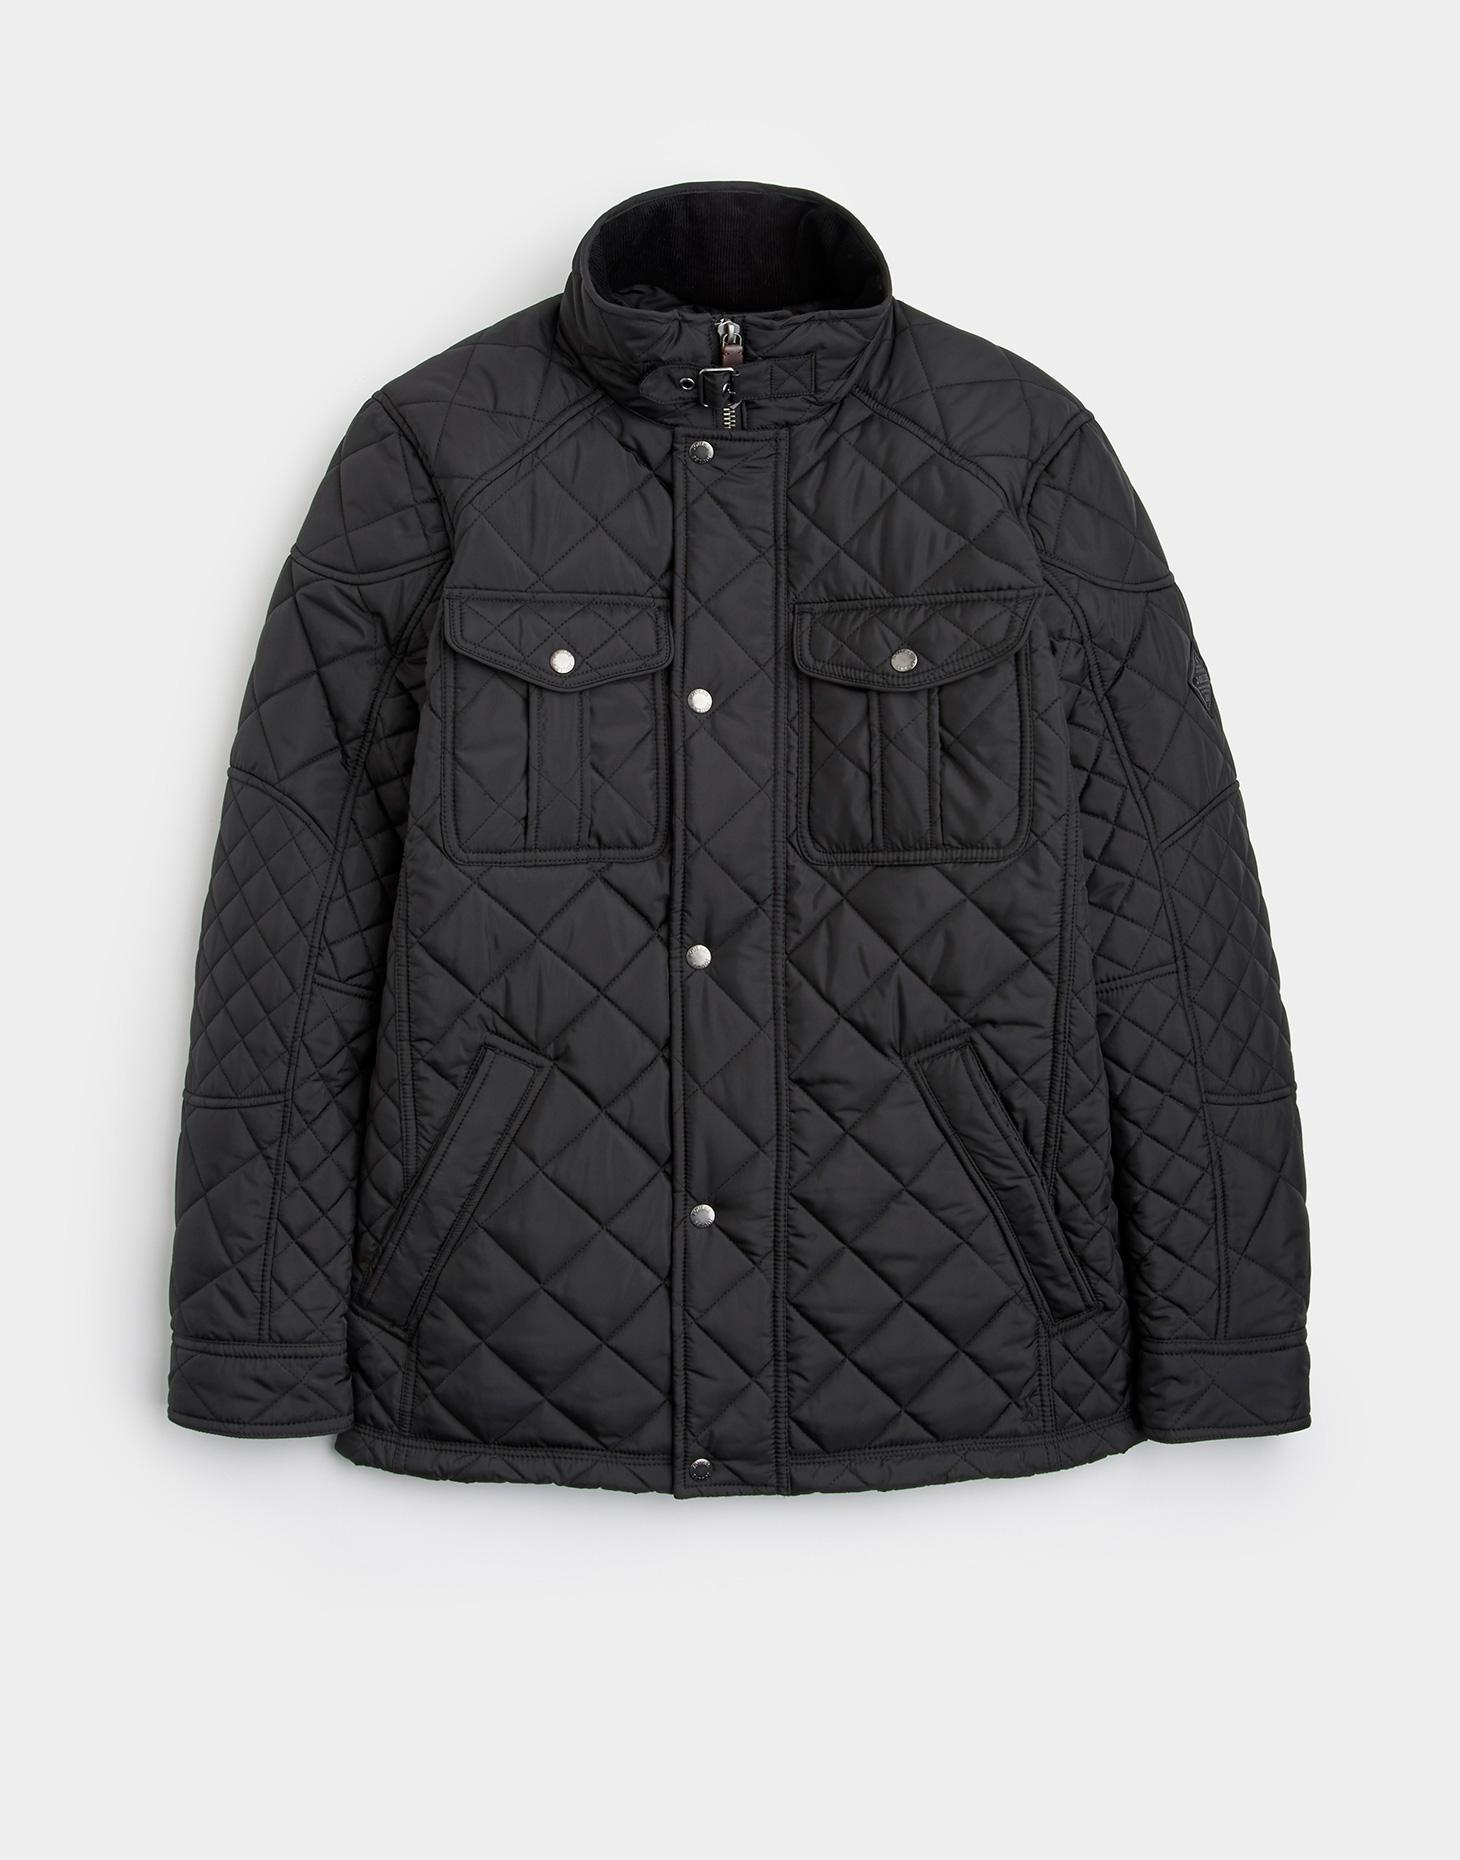 Joules Black HOLMWOOD Quilted Jacket